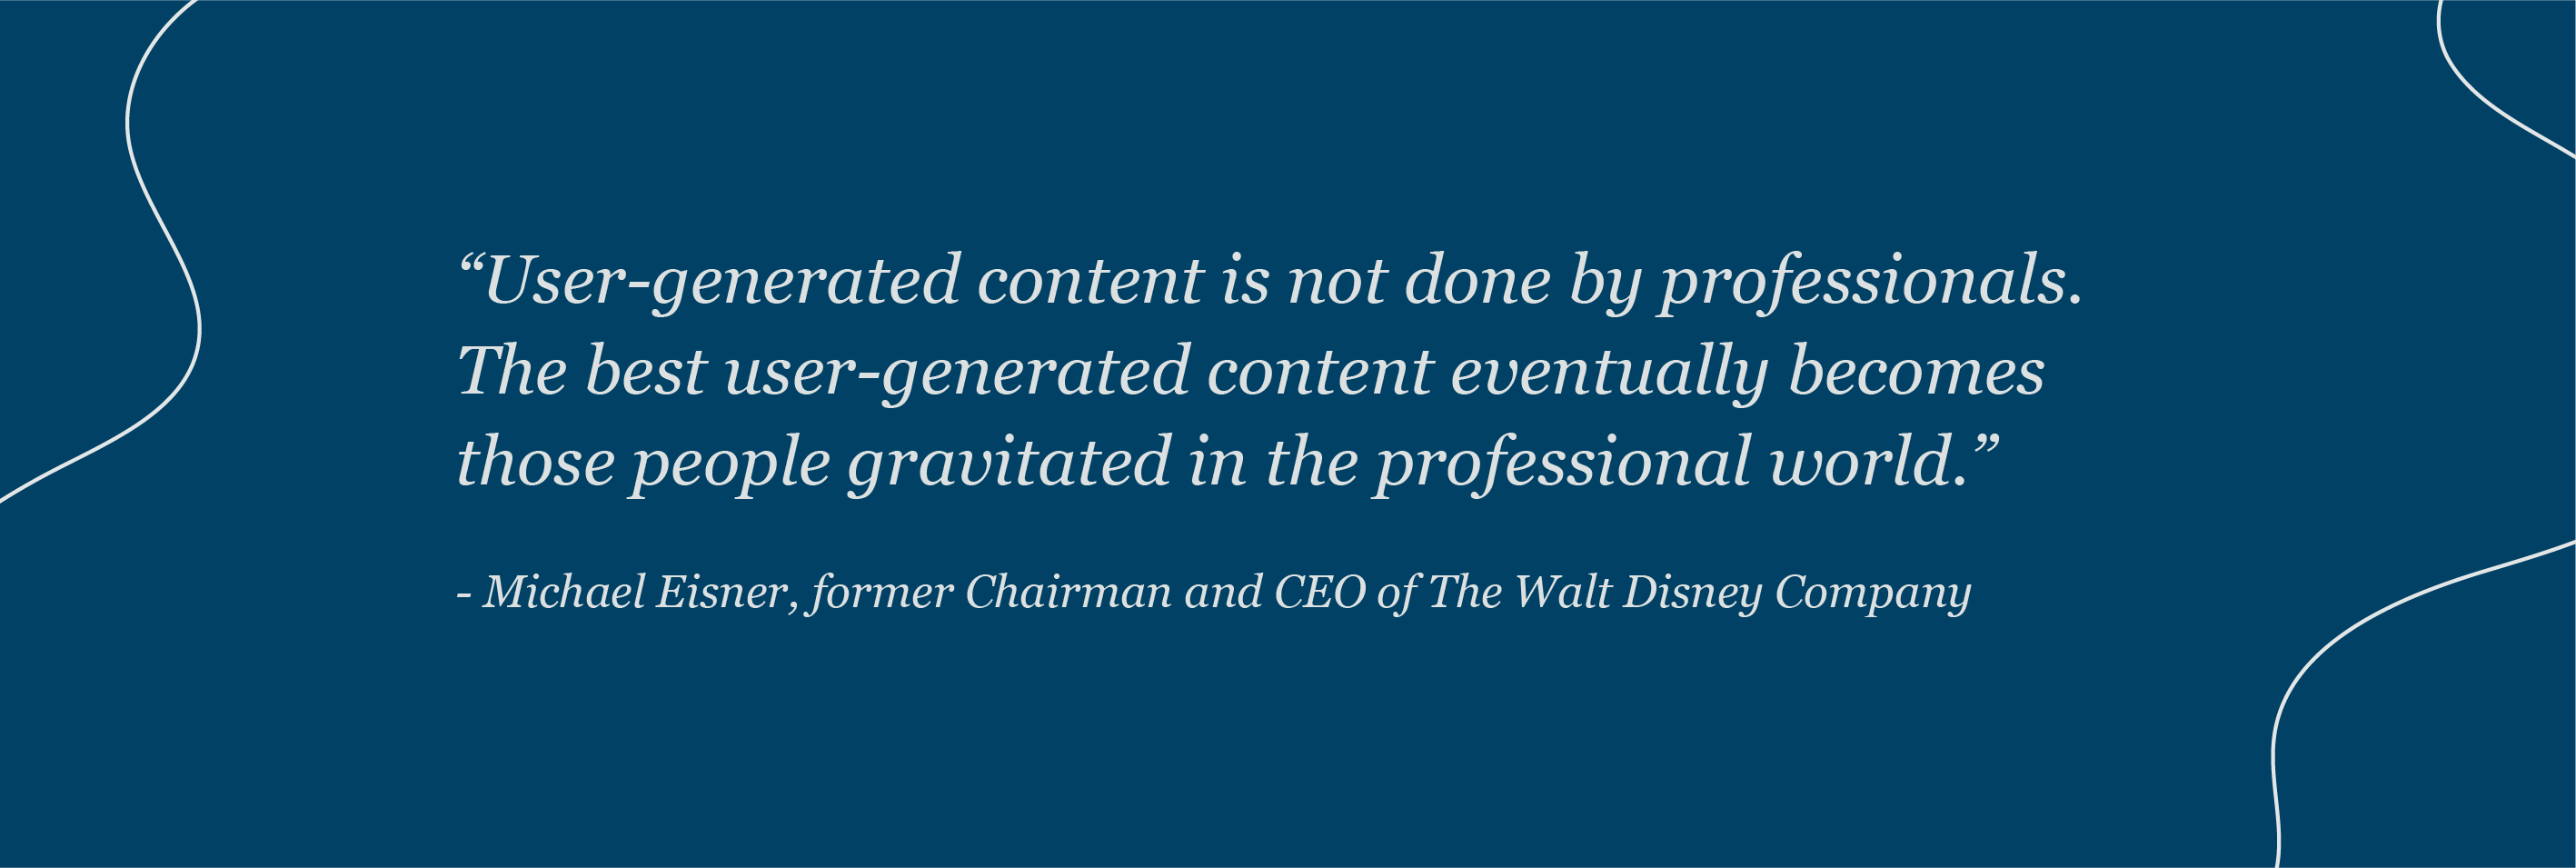 Michael Eisner quote on user generated content